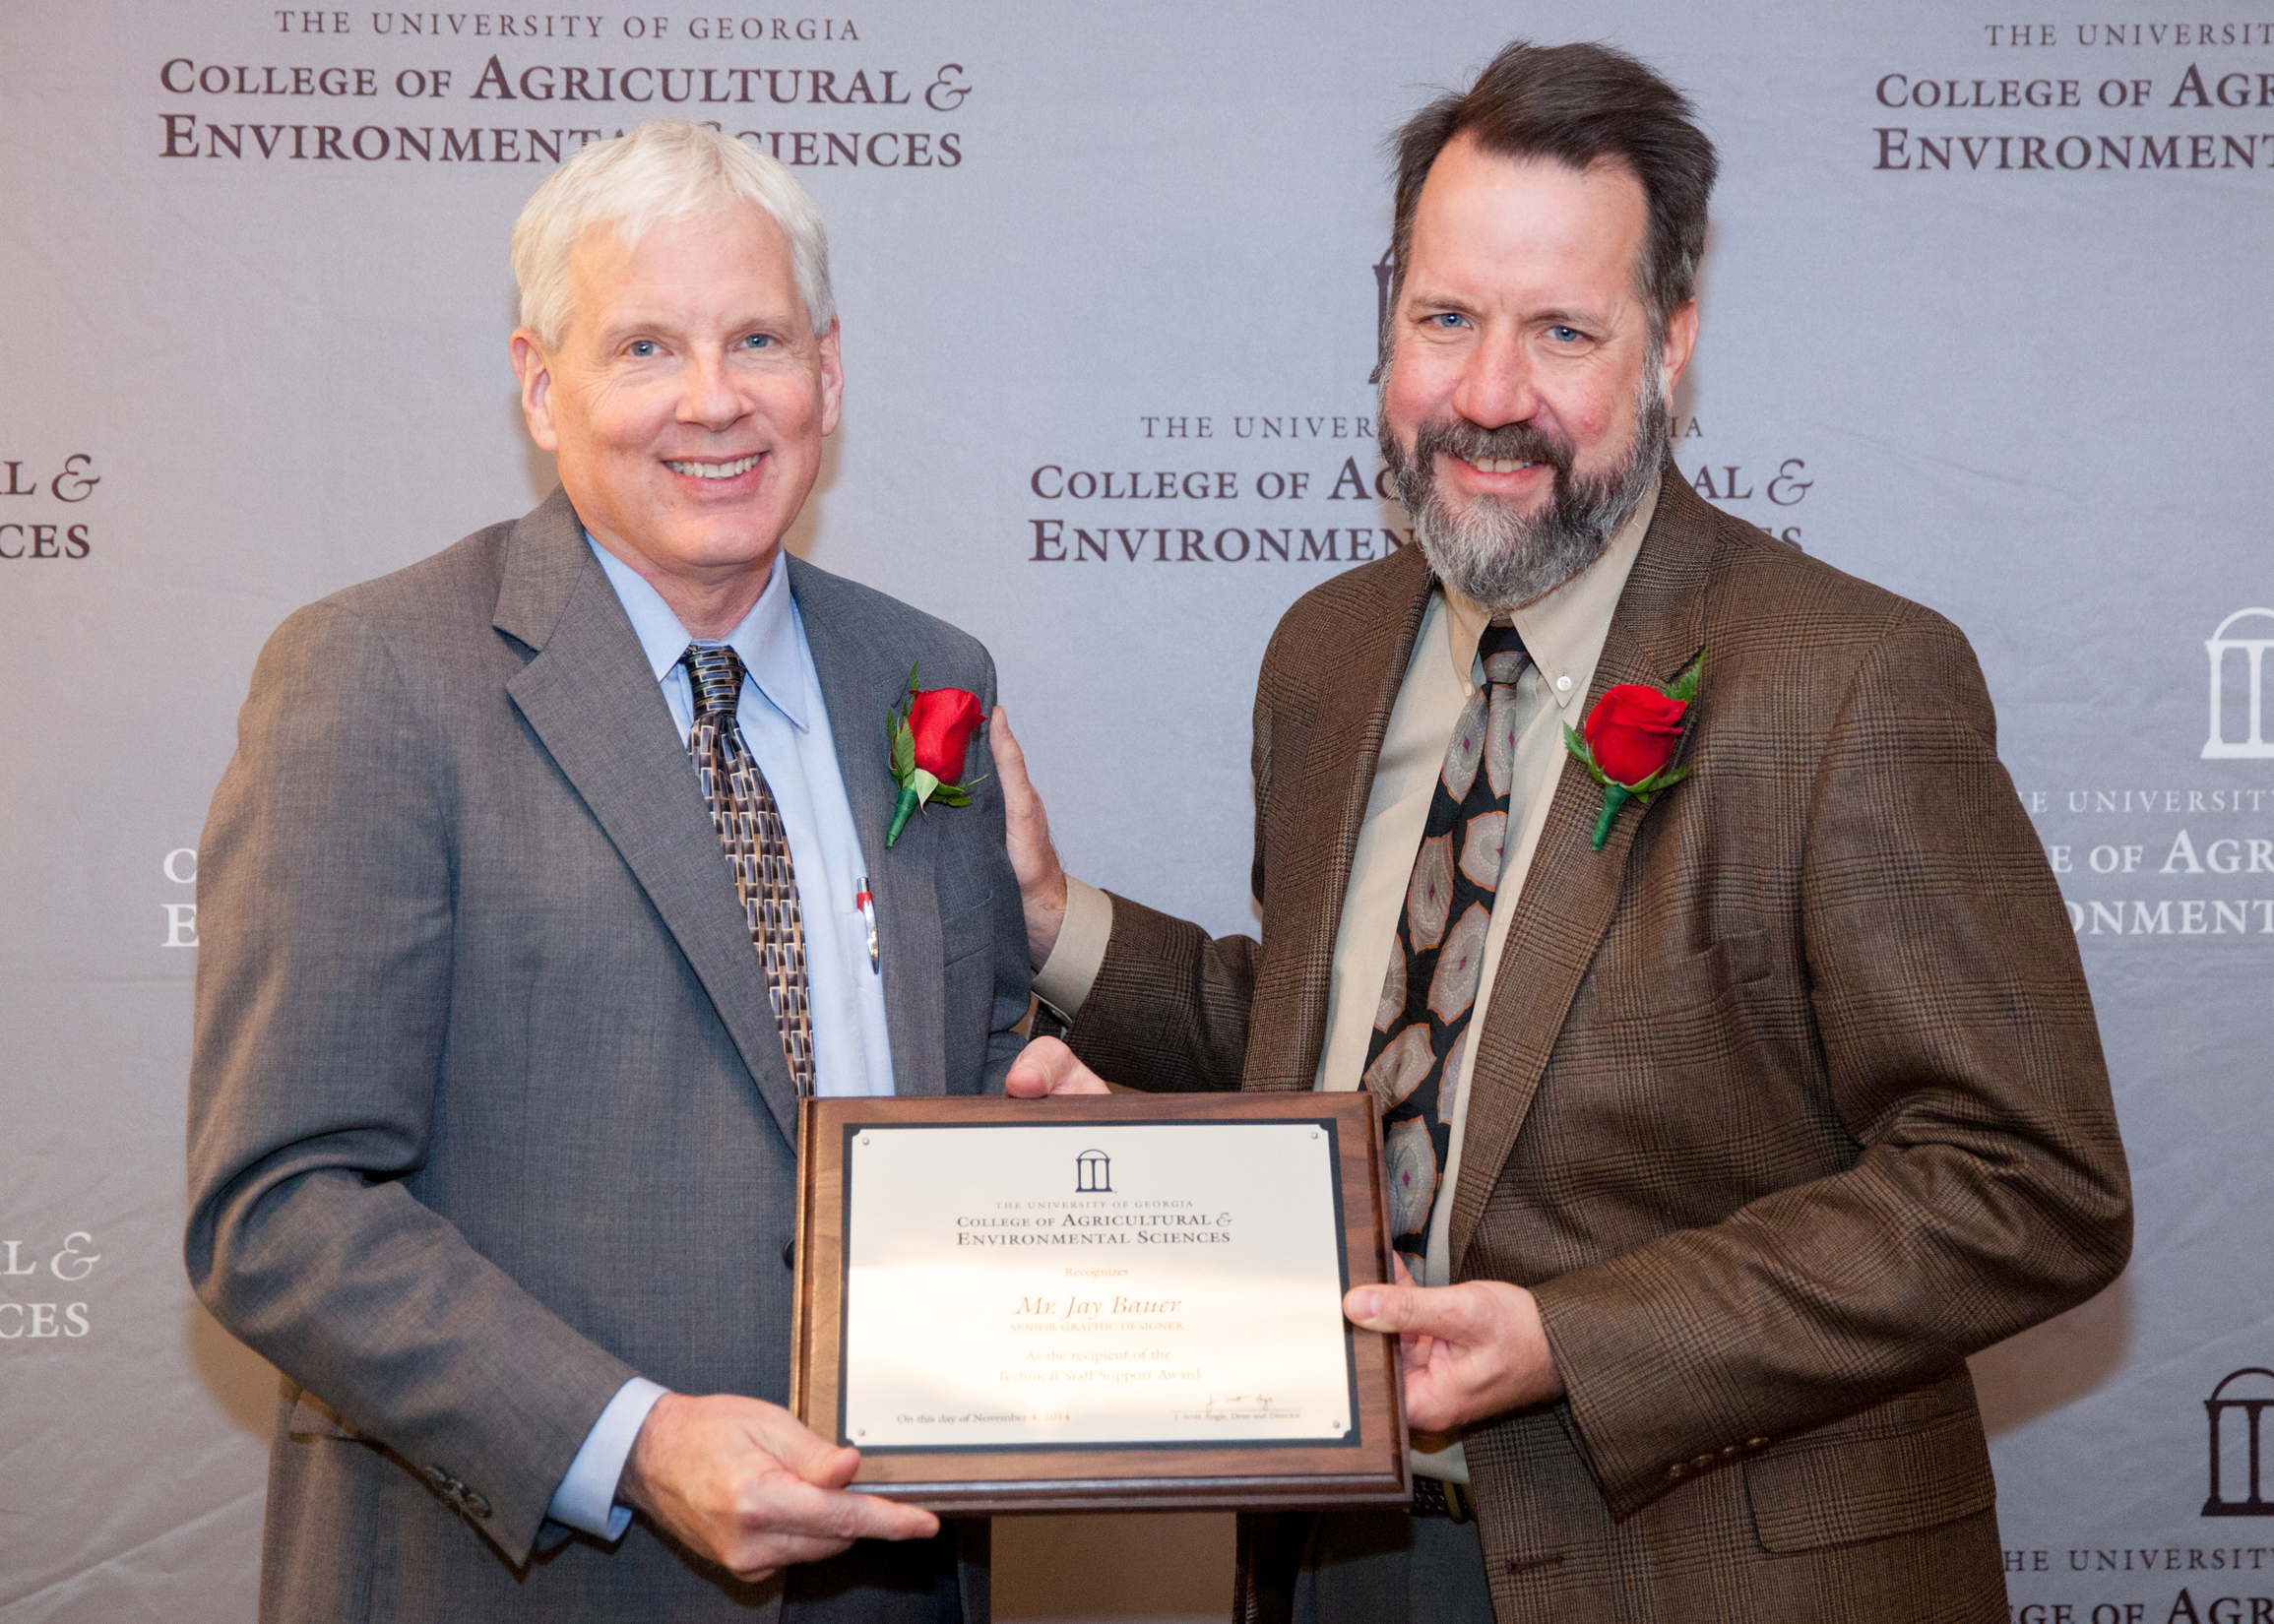 Dean J. Scott Angle presents Jay Bauer, senior graphics designer in the Office of Communication and Creative Services, with the CAES Staff Award for Technical Support. Bauer created the college's mascot, Caesar, when he started at the college 13 years ago. Most recently, he created a museum exhibit to celebrate the centennial of the UGA Extension.